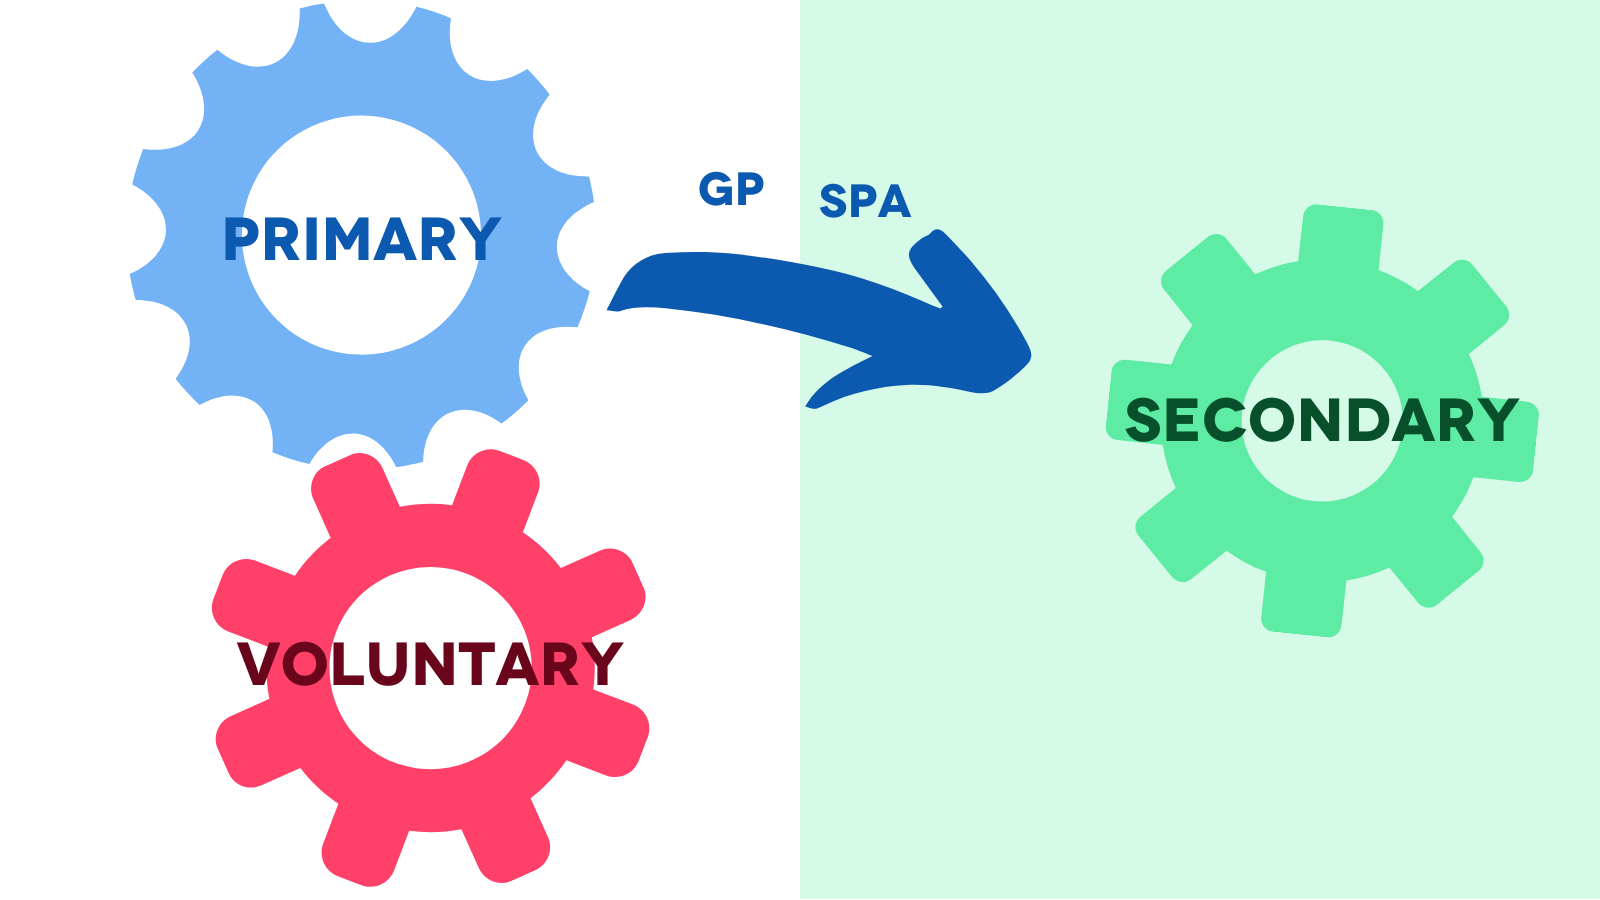 Image shows two cogs on white background labelled 'primary' and 'secondary'. An arrow from the 'primary' cog is labelled 'SPA' and 'GP' and points to a 'secondary' cog.